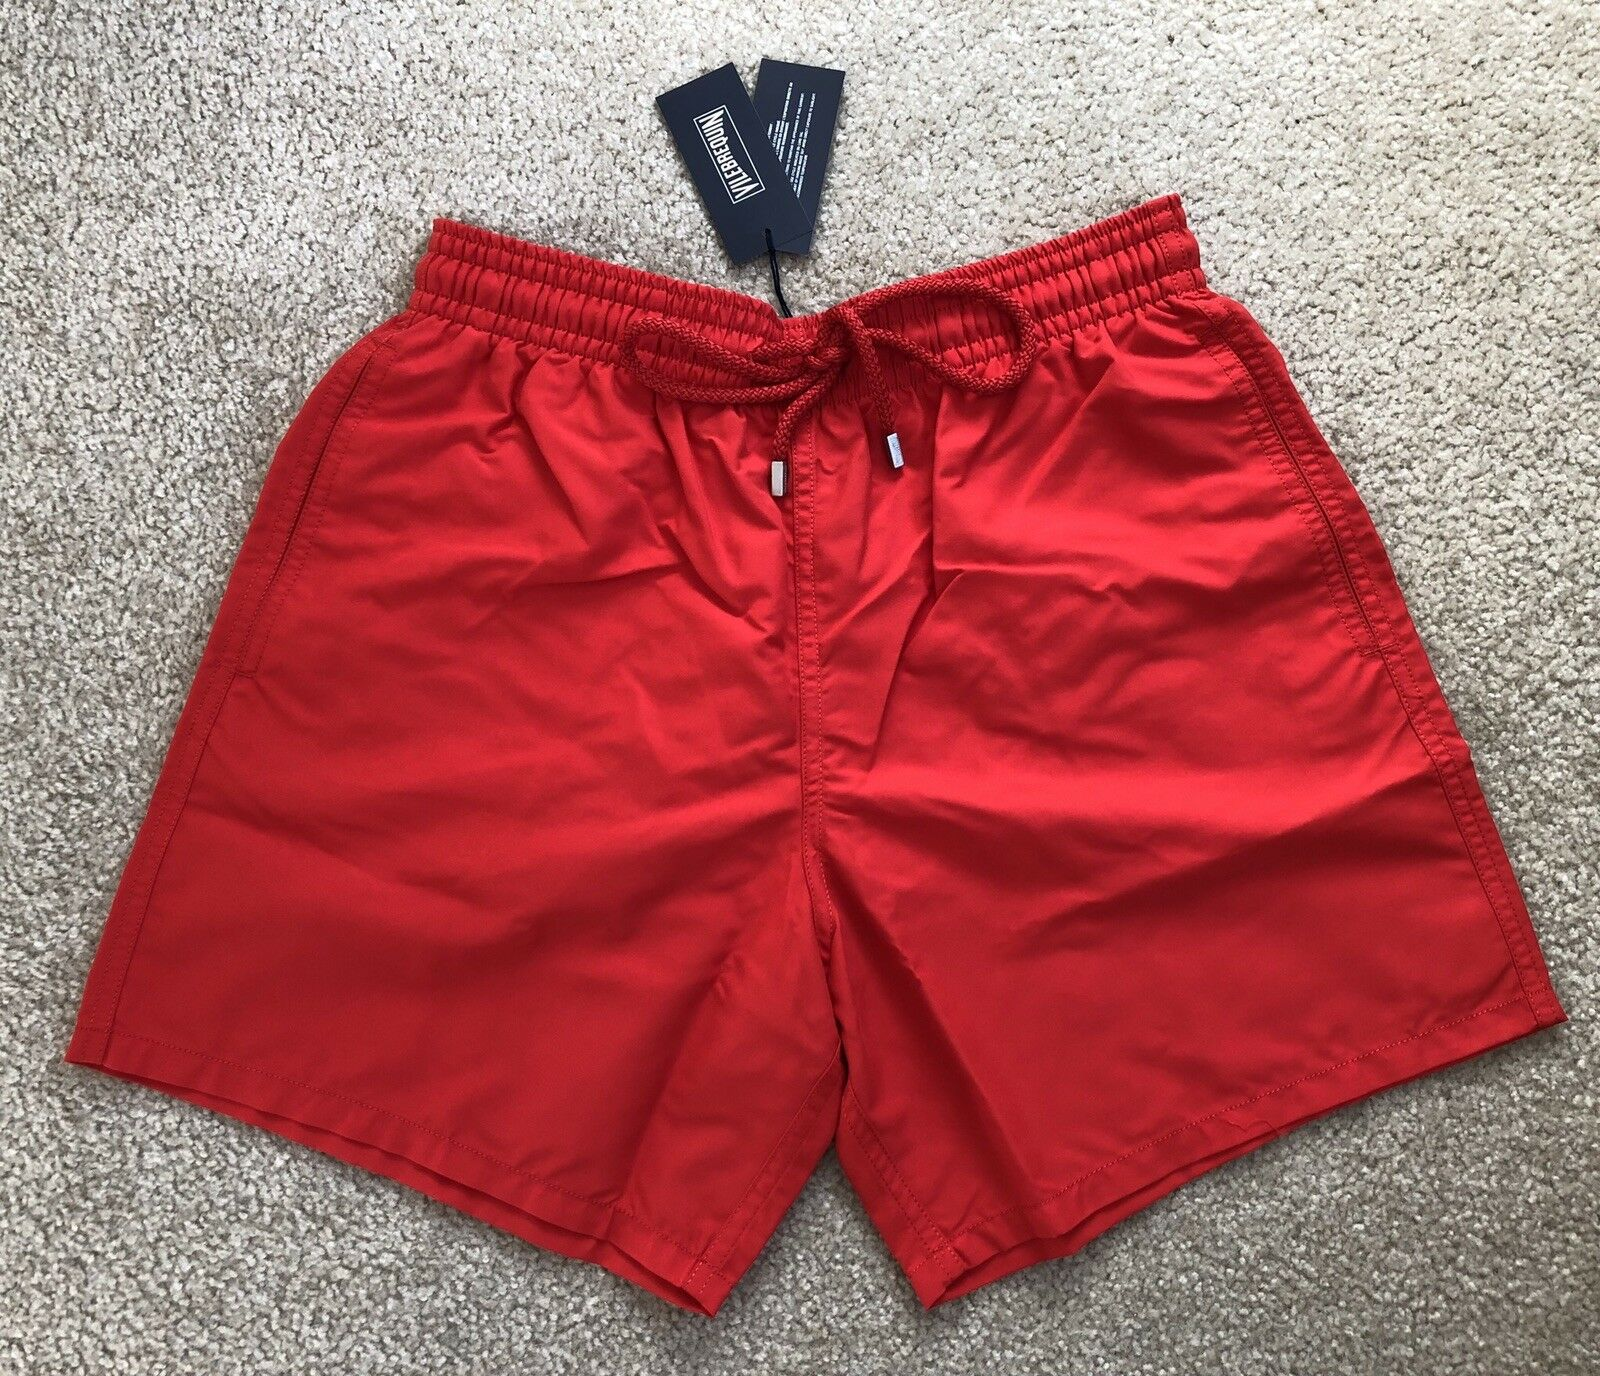 New w Tags Authentic Vilebrequin MOOREA Red Swim Trunks for Men L